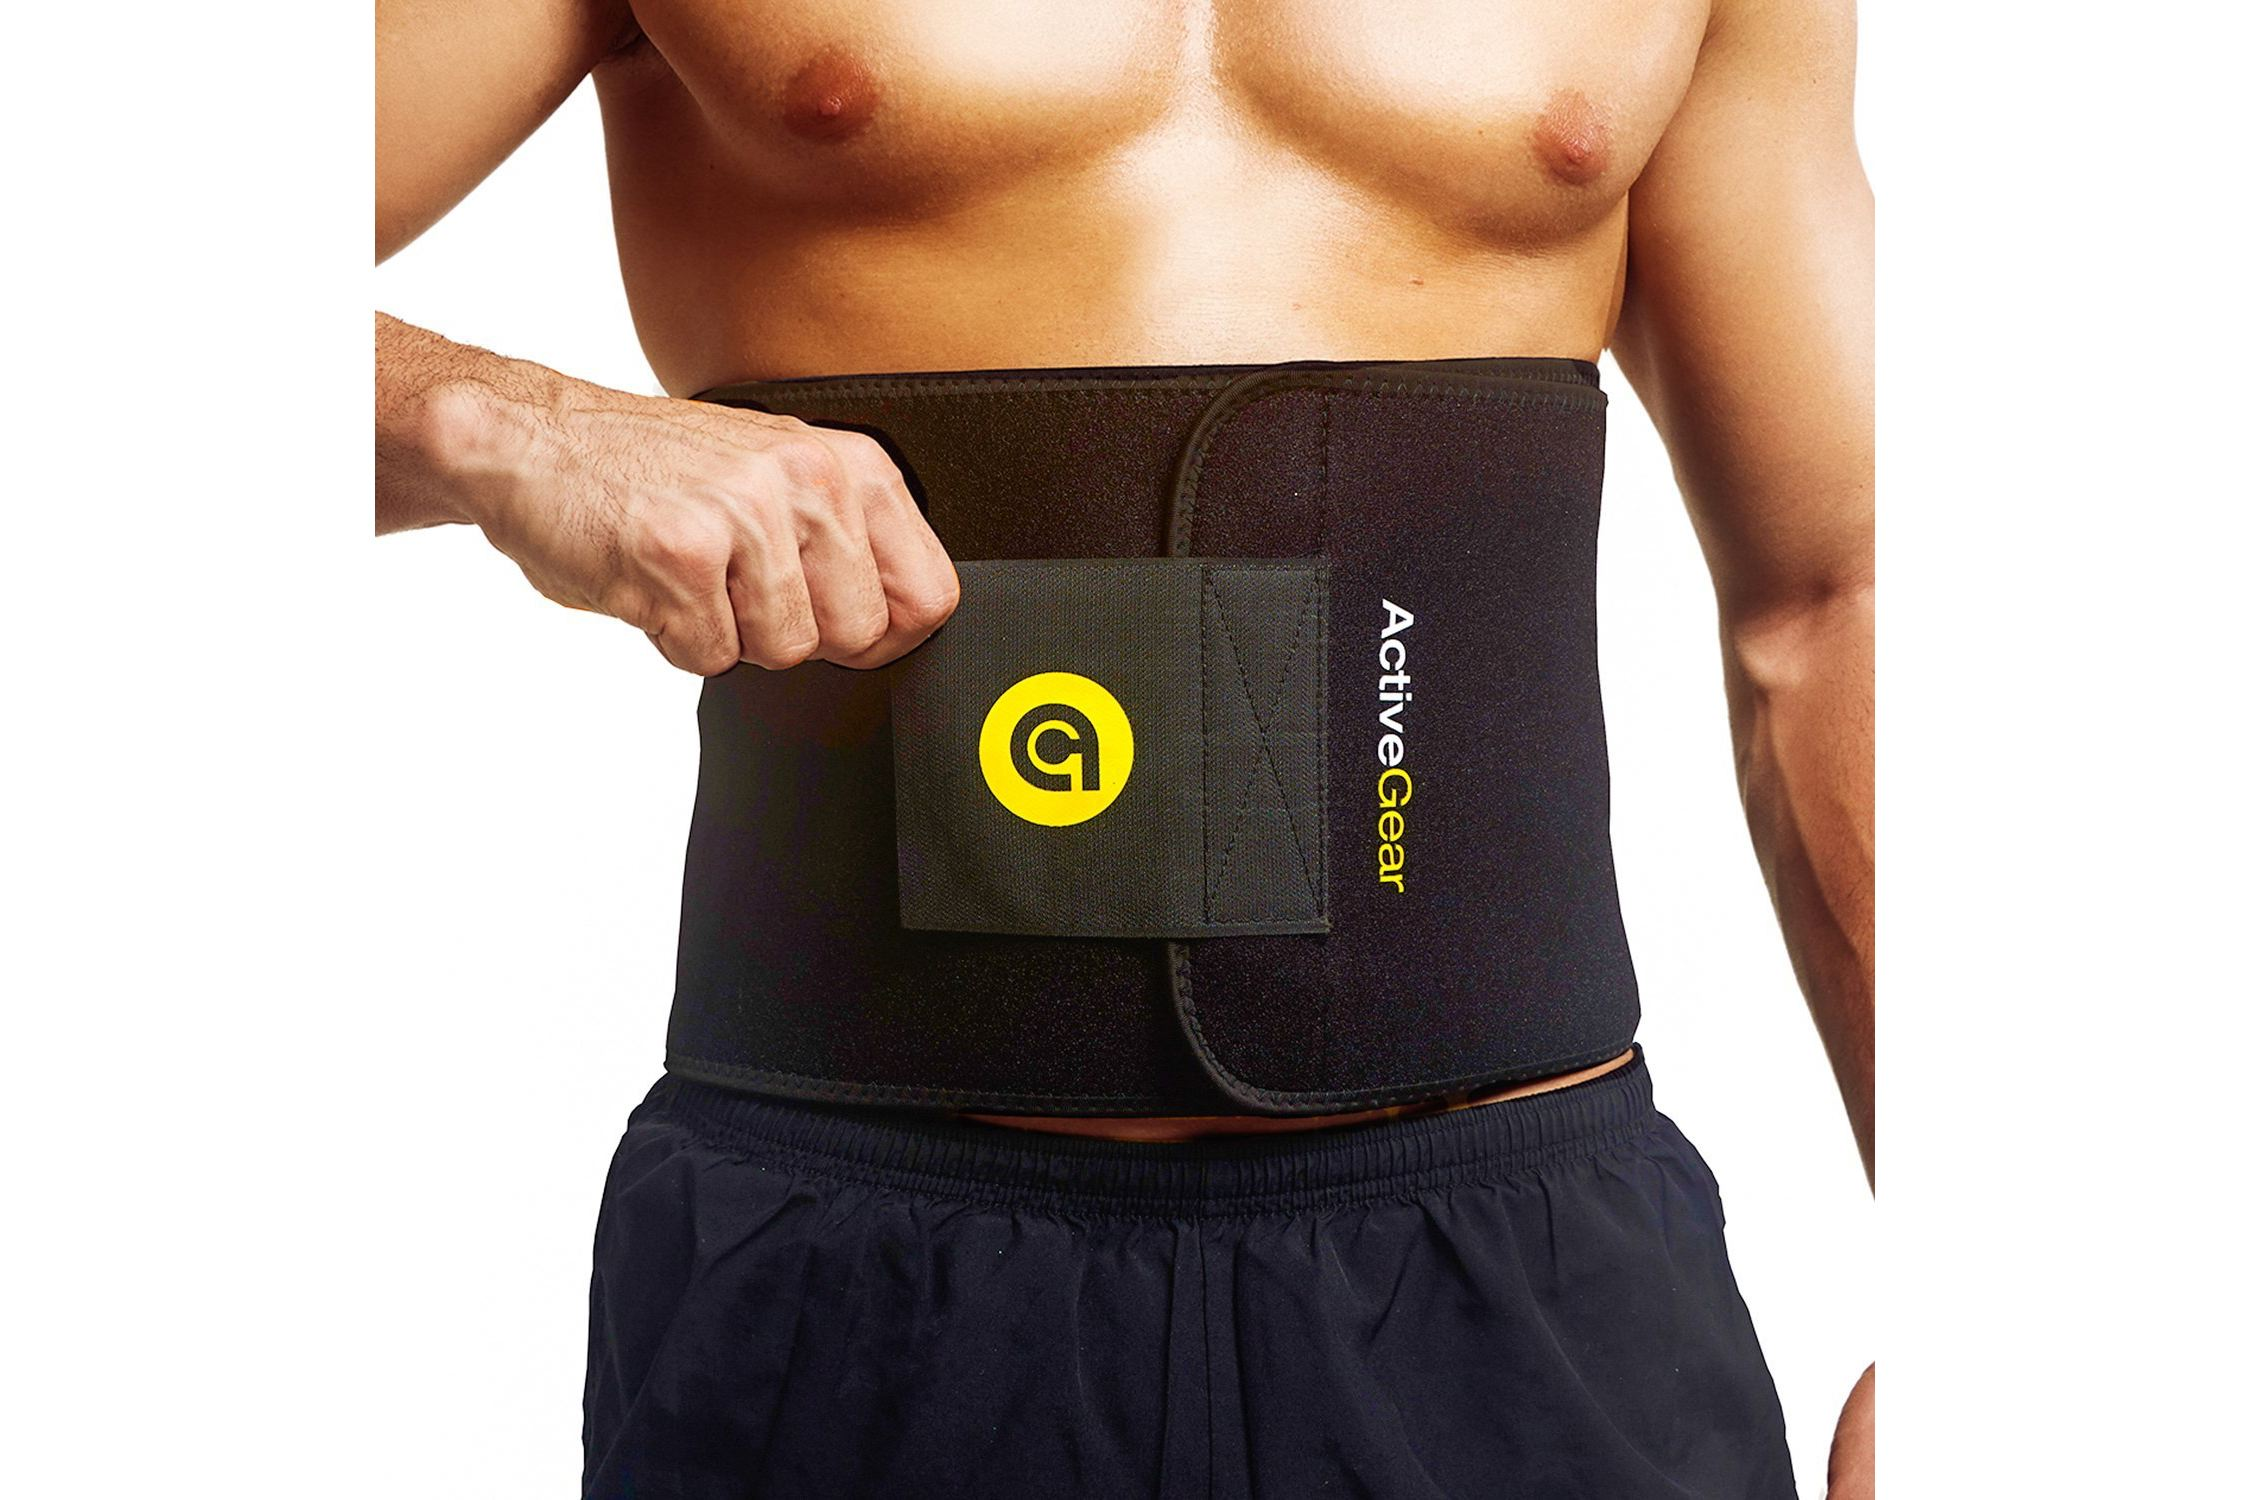 ActiveGear Premium Waist Trimmer Review